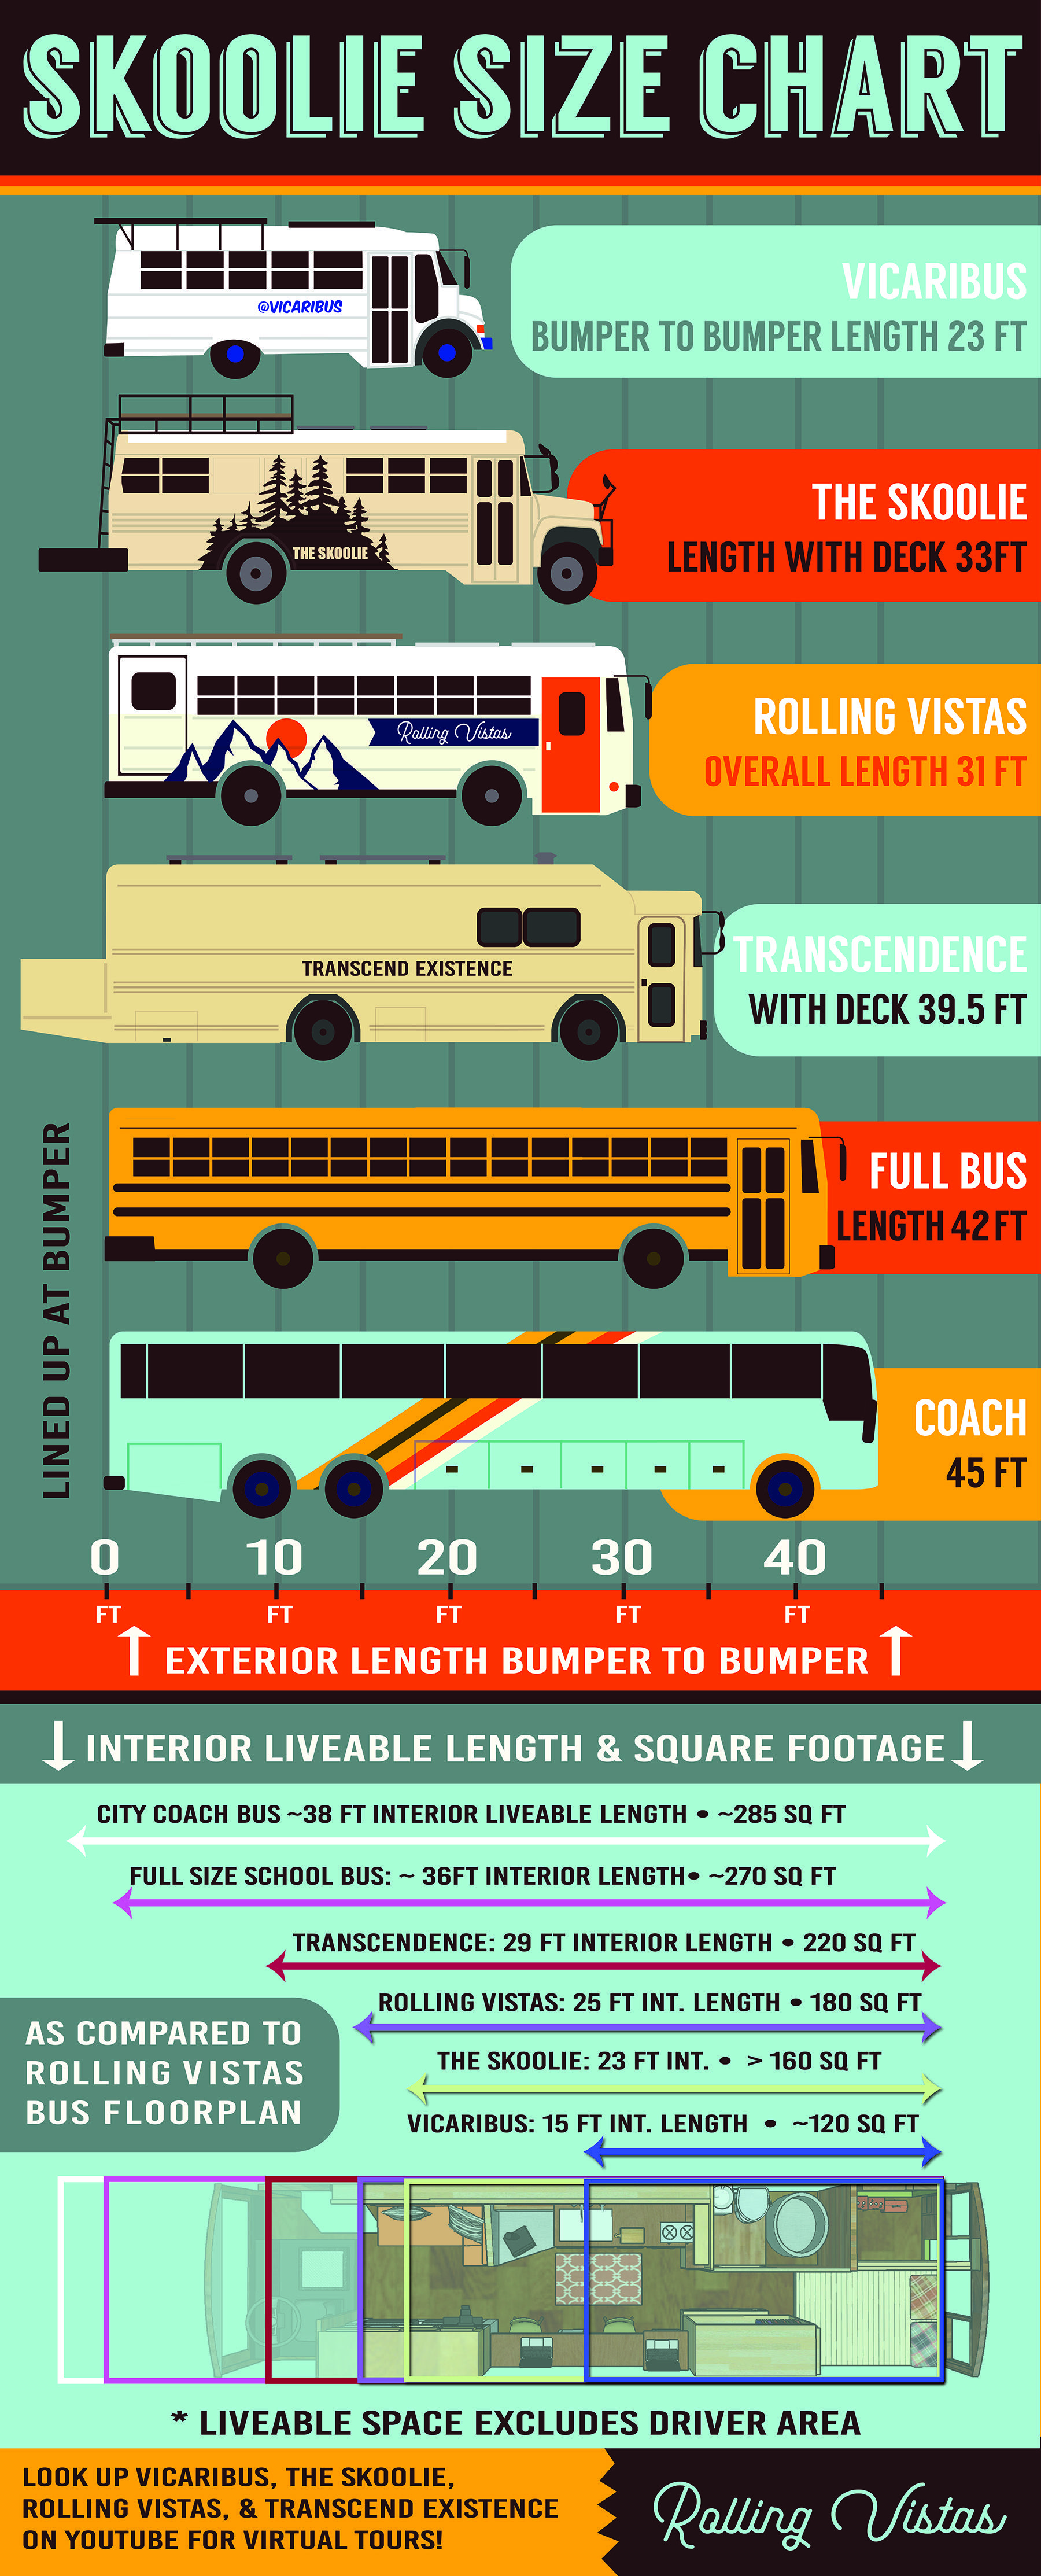 medium resolution of school bus conversion definitive size guide what length skoolie is right for you by rolling vistas